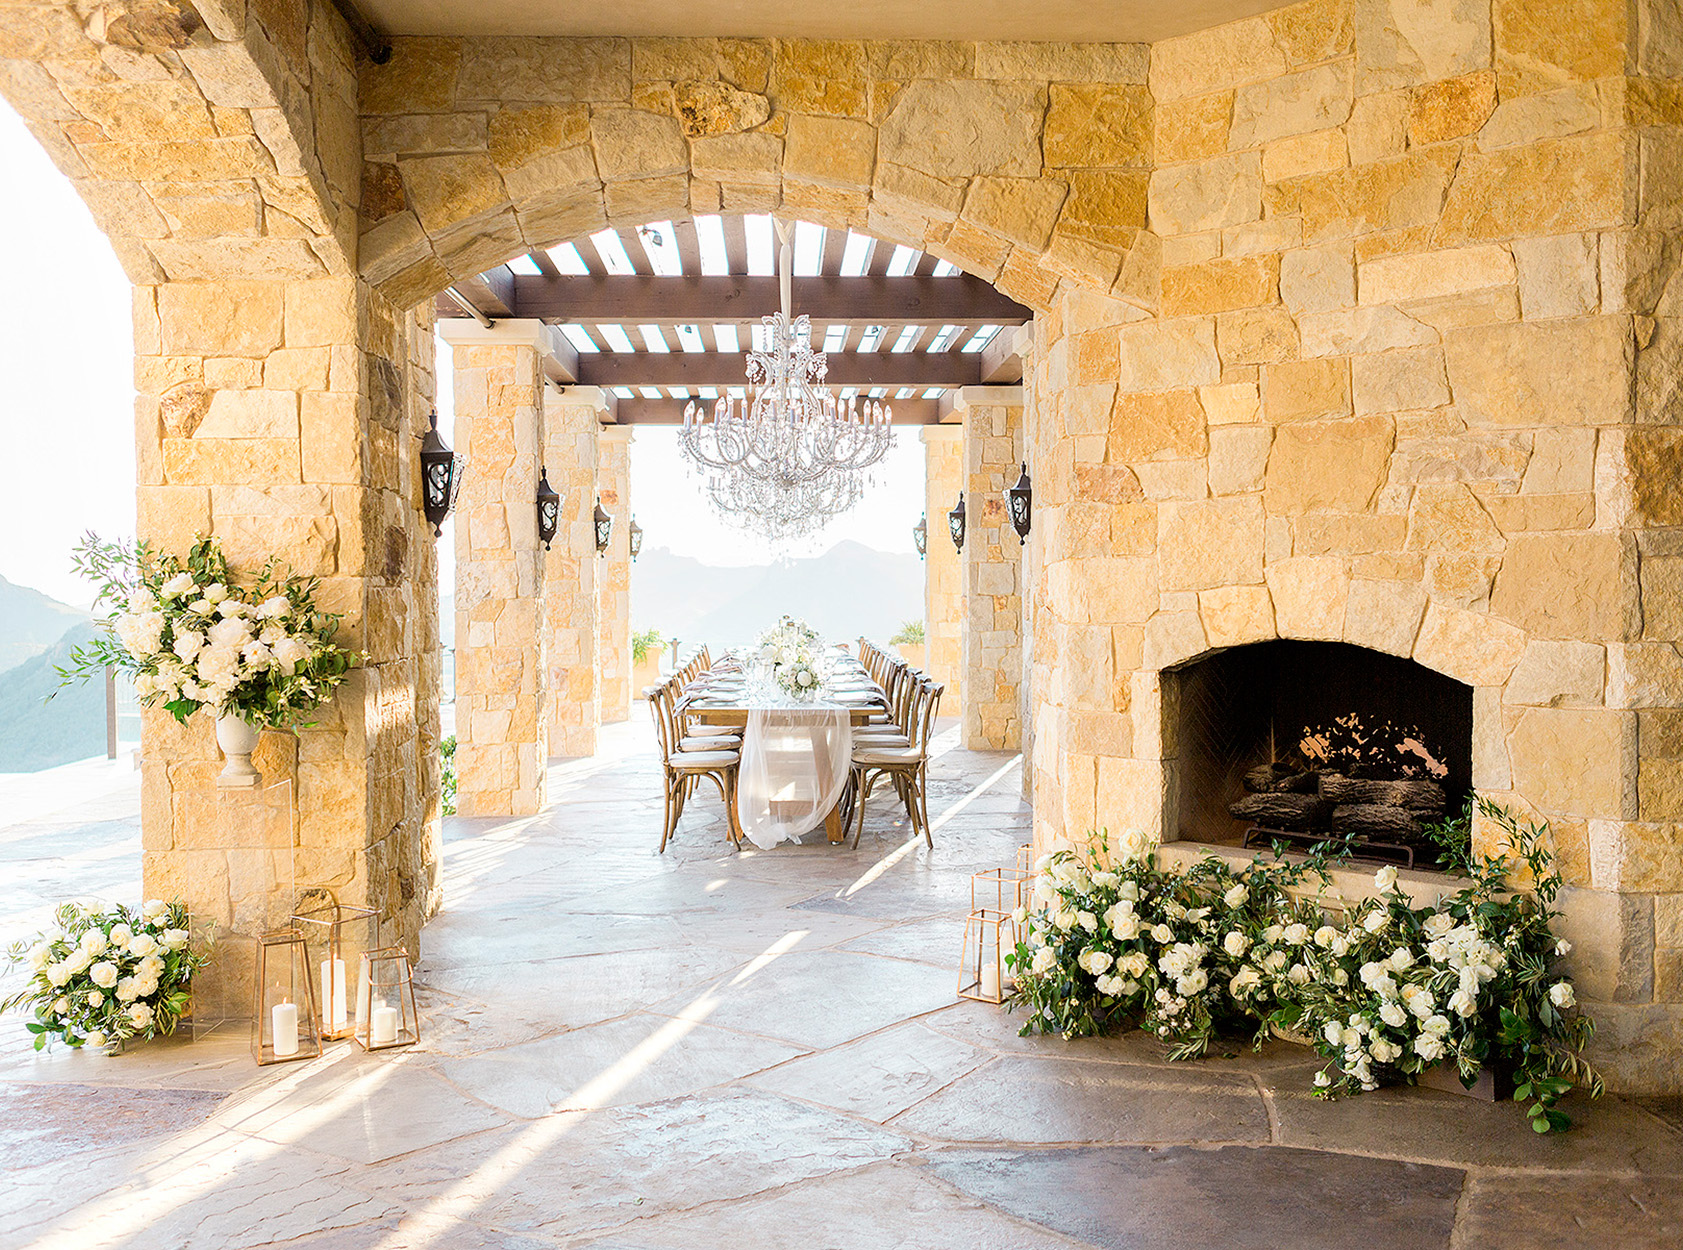 20_malibu rocky oaks wedding.jpg